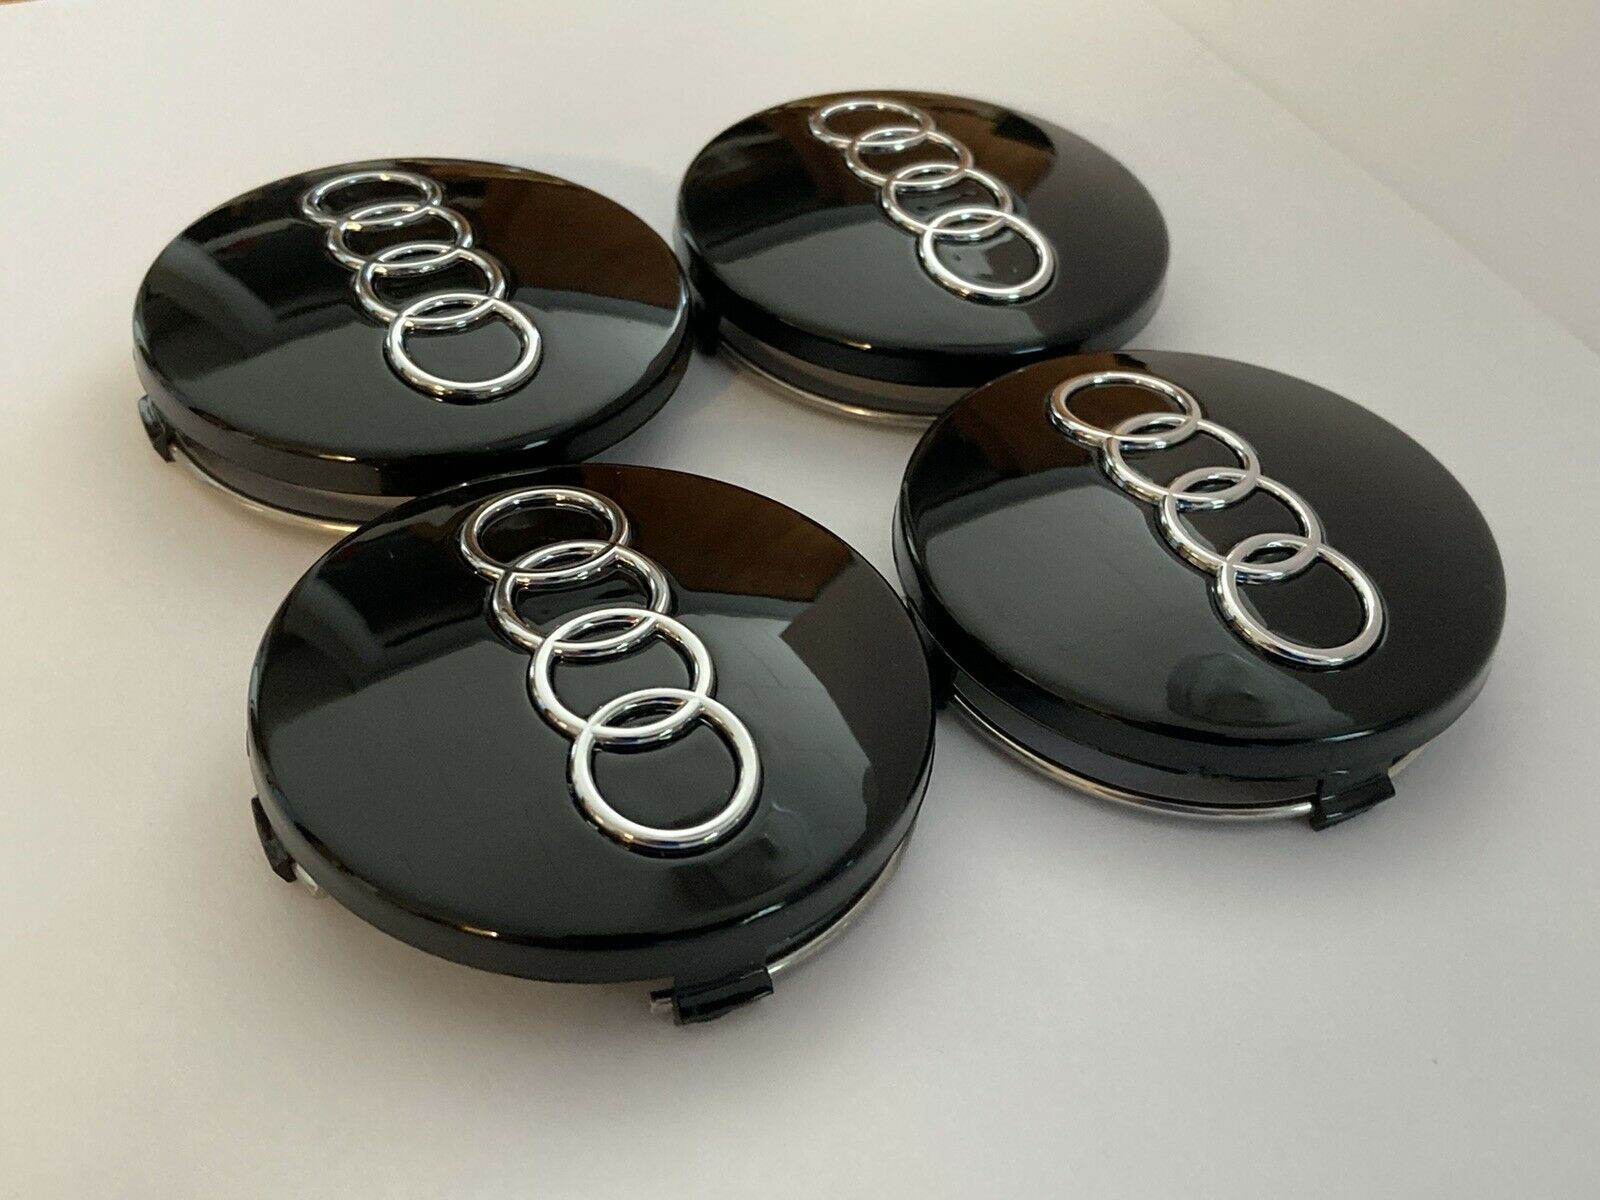 4x Audi Wheel Center Cap 60MM Fits A3 A4 A6 A8 S4 TT Q7 S4 S6 S8